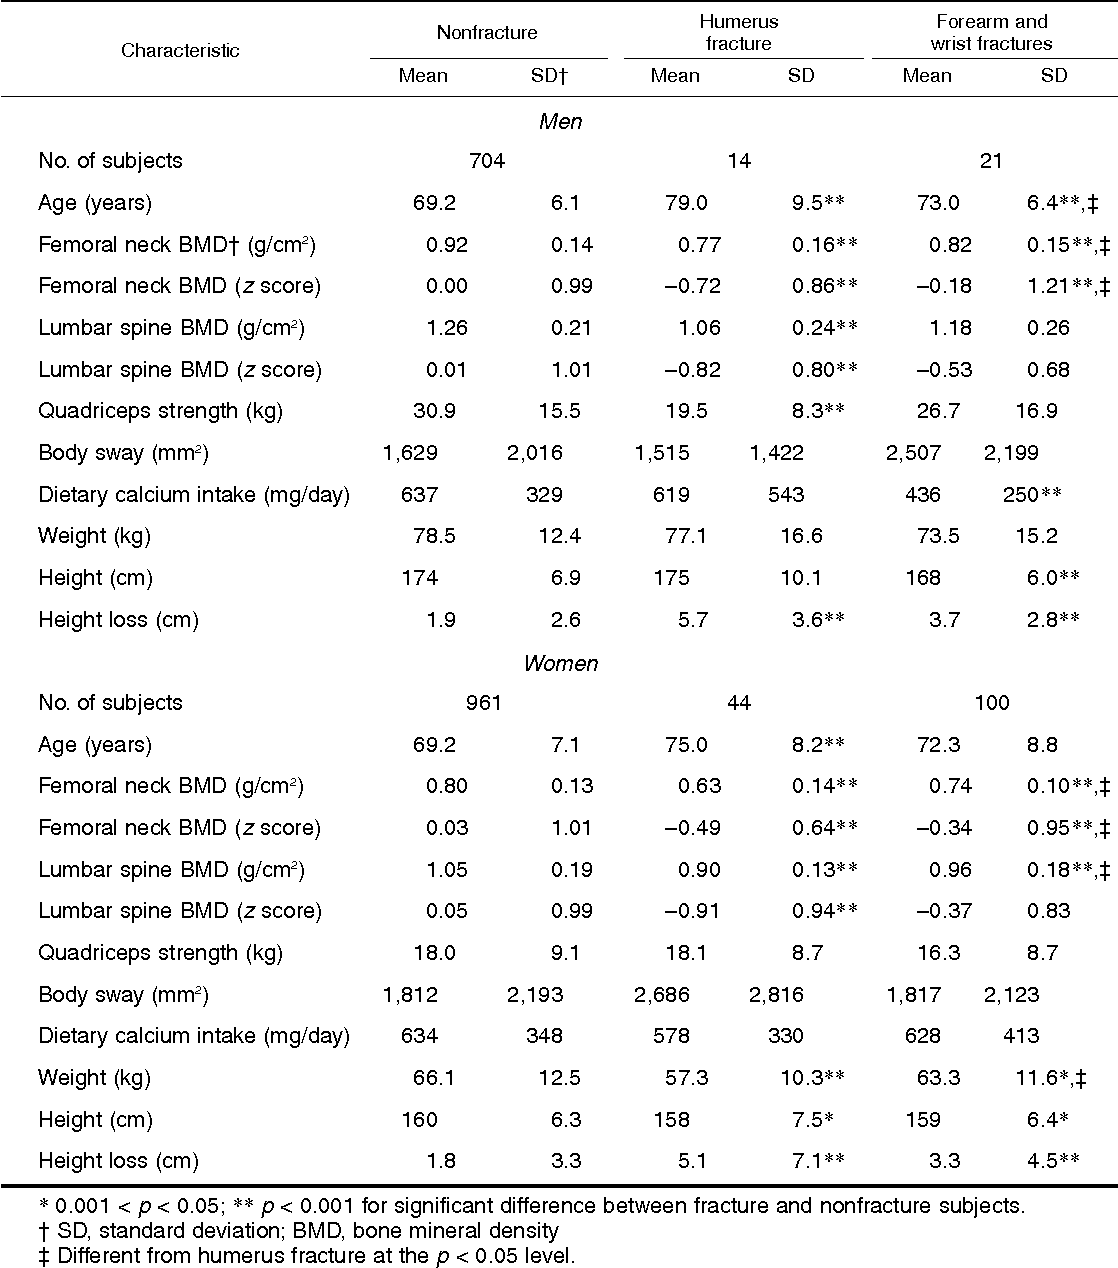 Risk Factors For Proximal Humerus Forearm And Wrist Fractures In